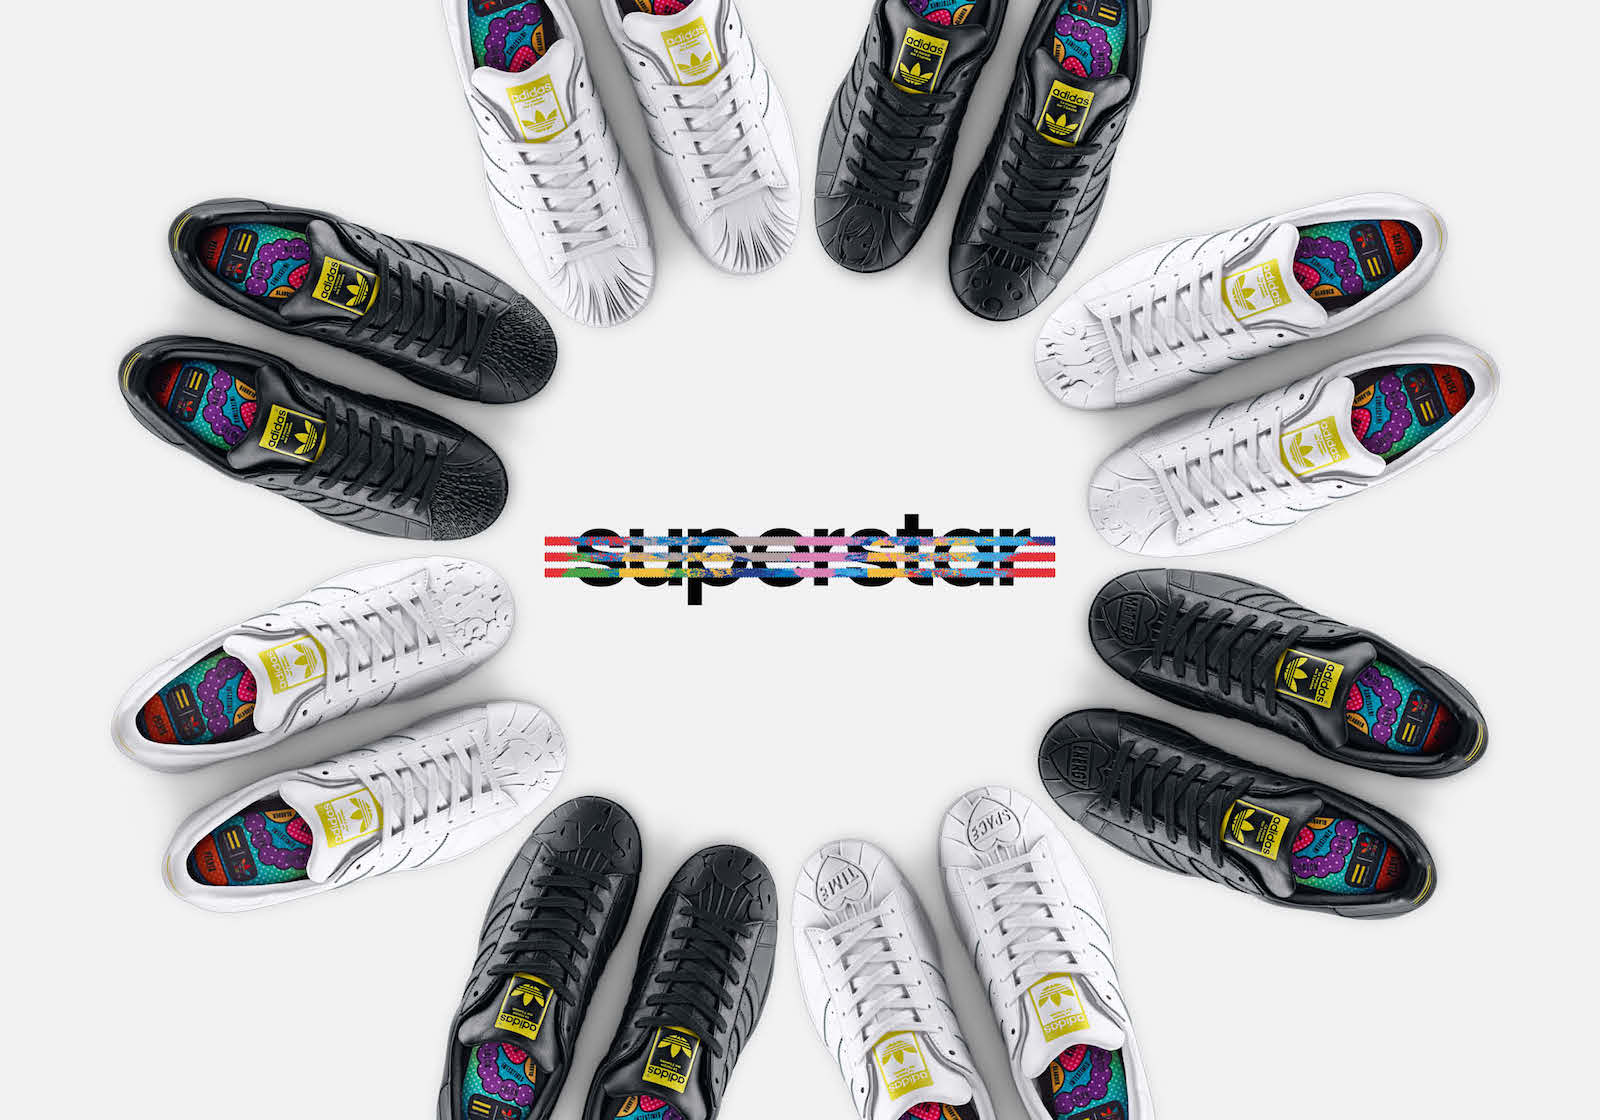 Adidas Superstar X Pharrell Williams – Supershell Sculpted Collection